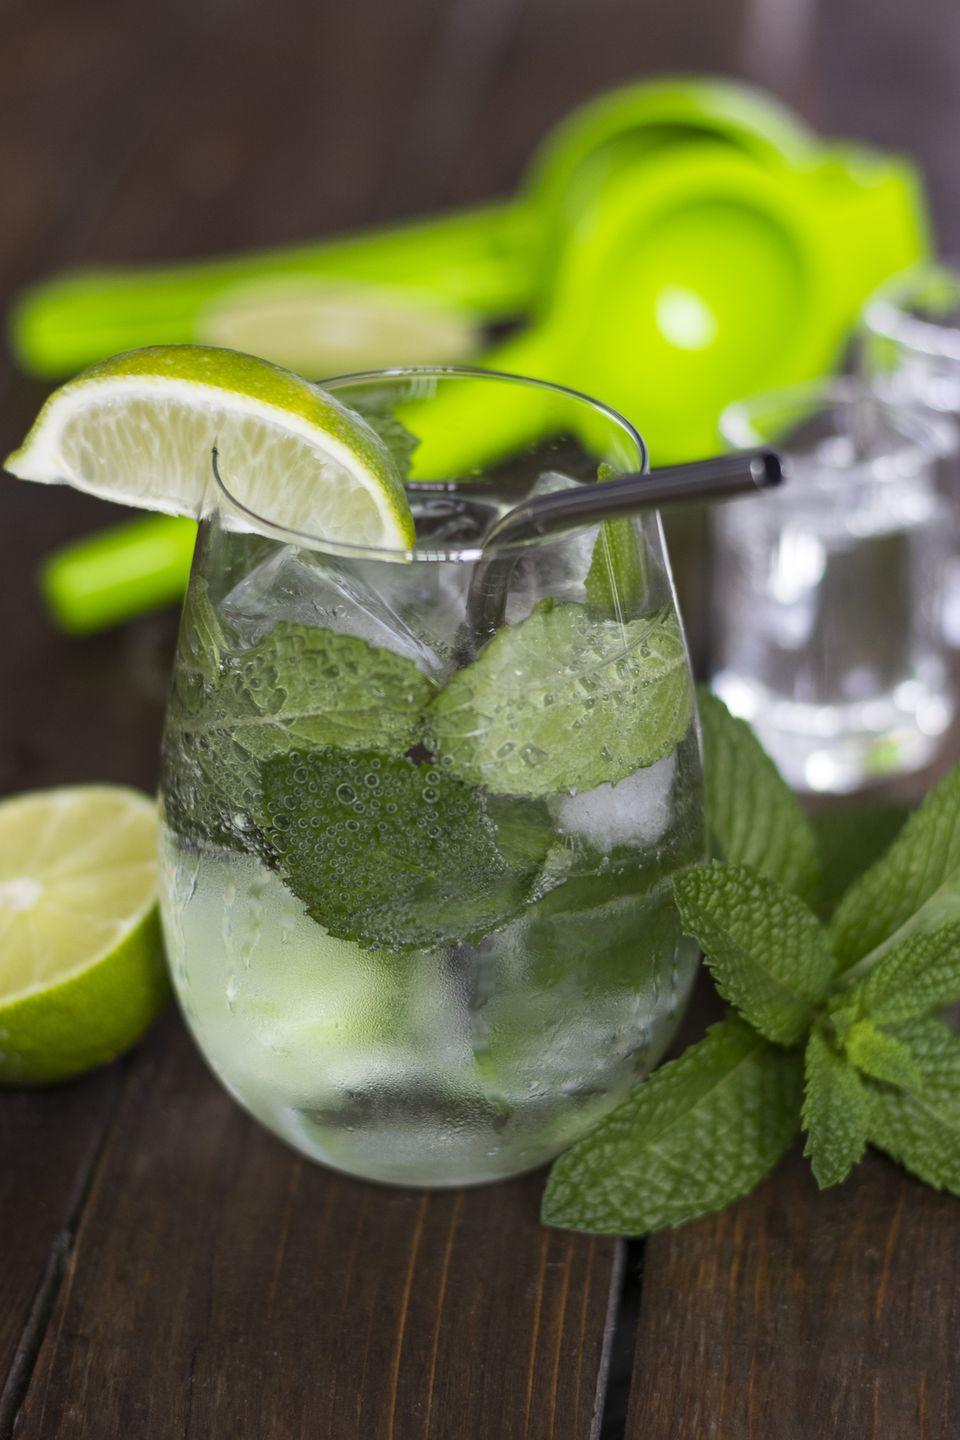 "<p>On a warm spring day, mojitos can be incredibly refreshing — but they're also often loaded with sugar and calories. Luckily, this keto mojito recipe from <a href=""https://www.tasteaholics.com/recipes/drinks/keto-mojito-low-carb-sugar-free/"" rel=""nofollow noopener"" target=""_blank"" data-ylk=""slk:Tasteaholics"" class=""link rapid-noclick-resp"">Tasteaholics</a> swaps out sugar with a tablespoon of the low-calorie sweetener<a class=""link rapid-noclick-resp"" href=""https://amzn.to/2E2RKLL"" rel=""nofollow noopener"" target=""_blank"" data-ylk=""slk:erythritol""> erythritol</a>. This cocktail has only 140 calories and contains only 3 grams of carbs.</p>"